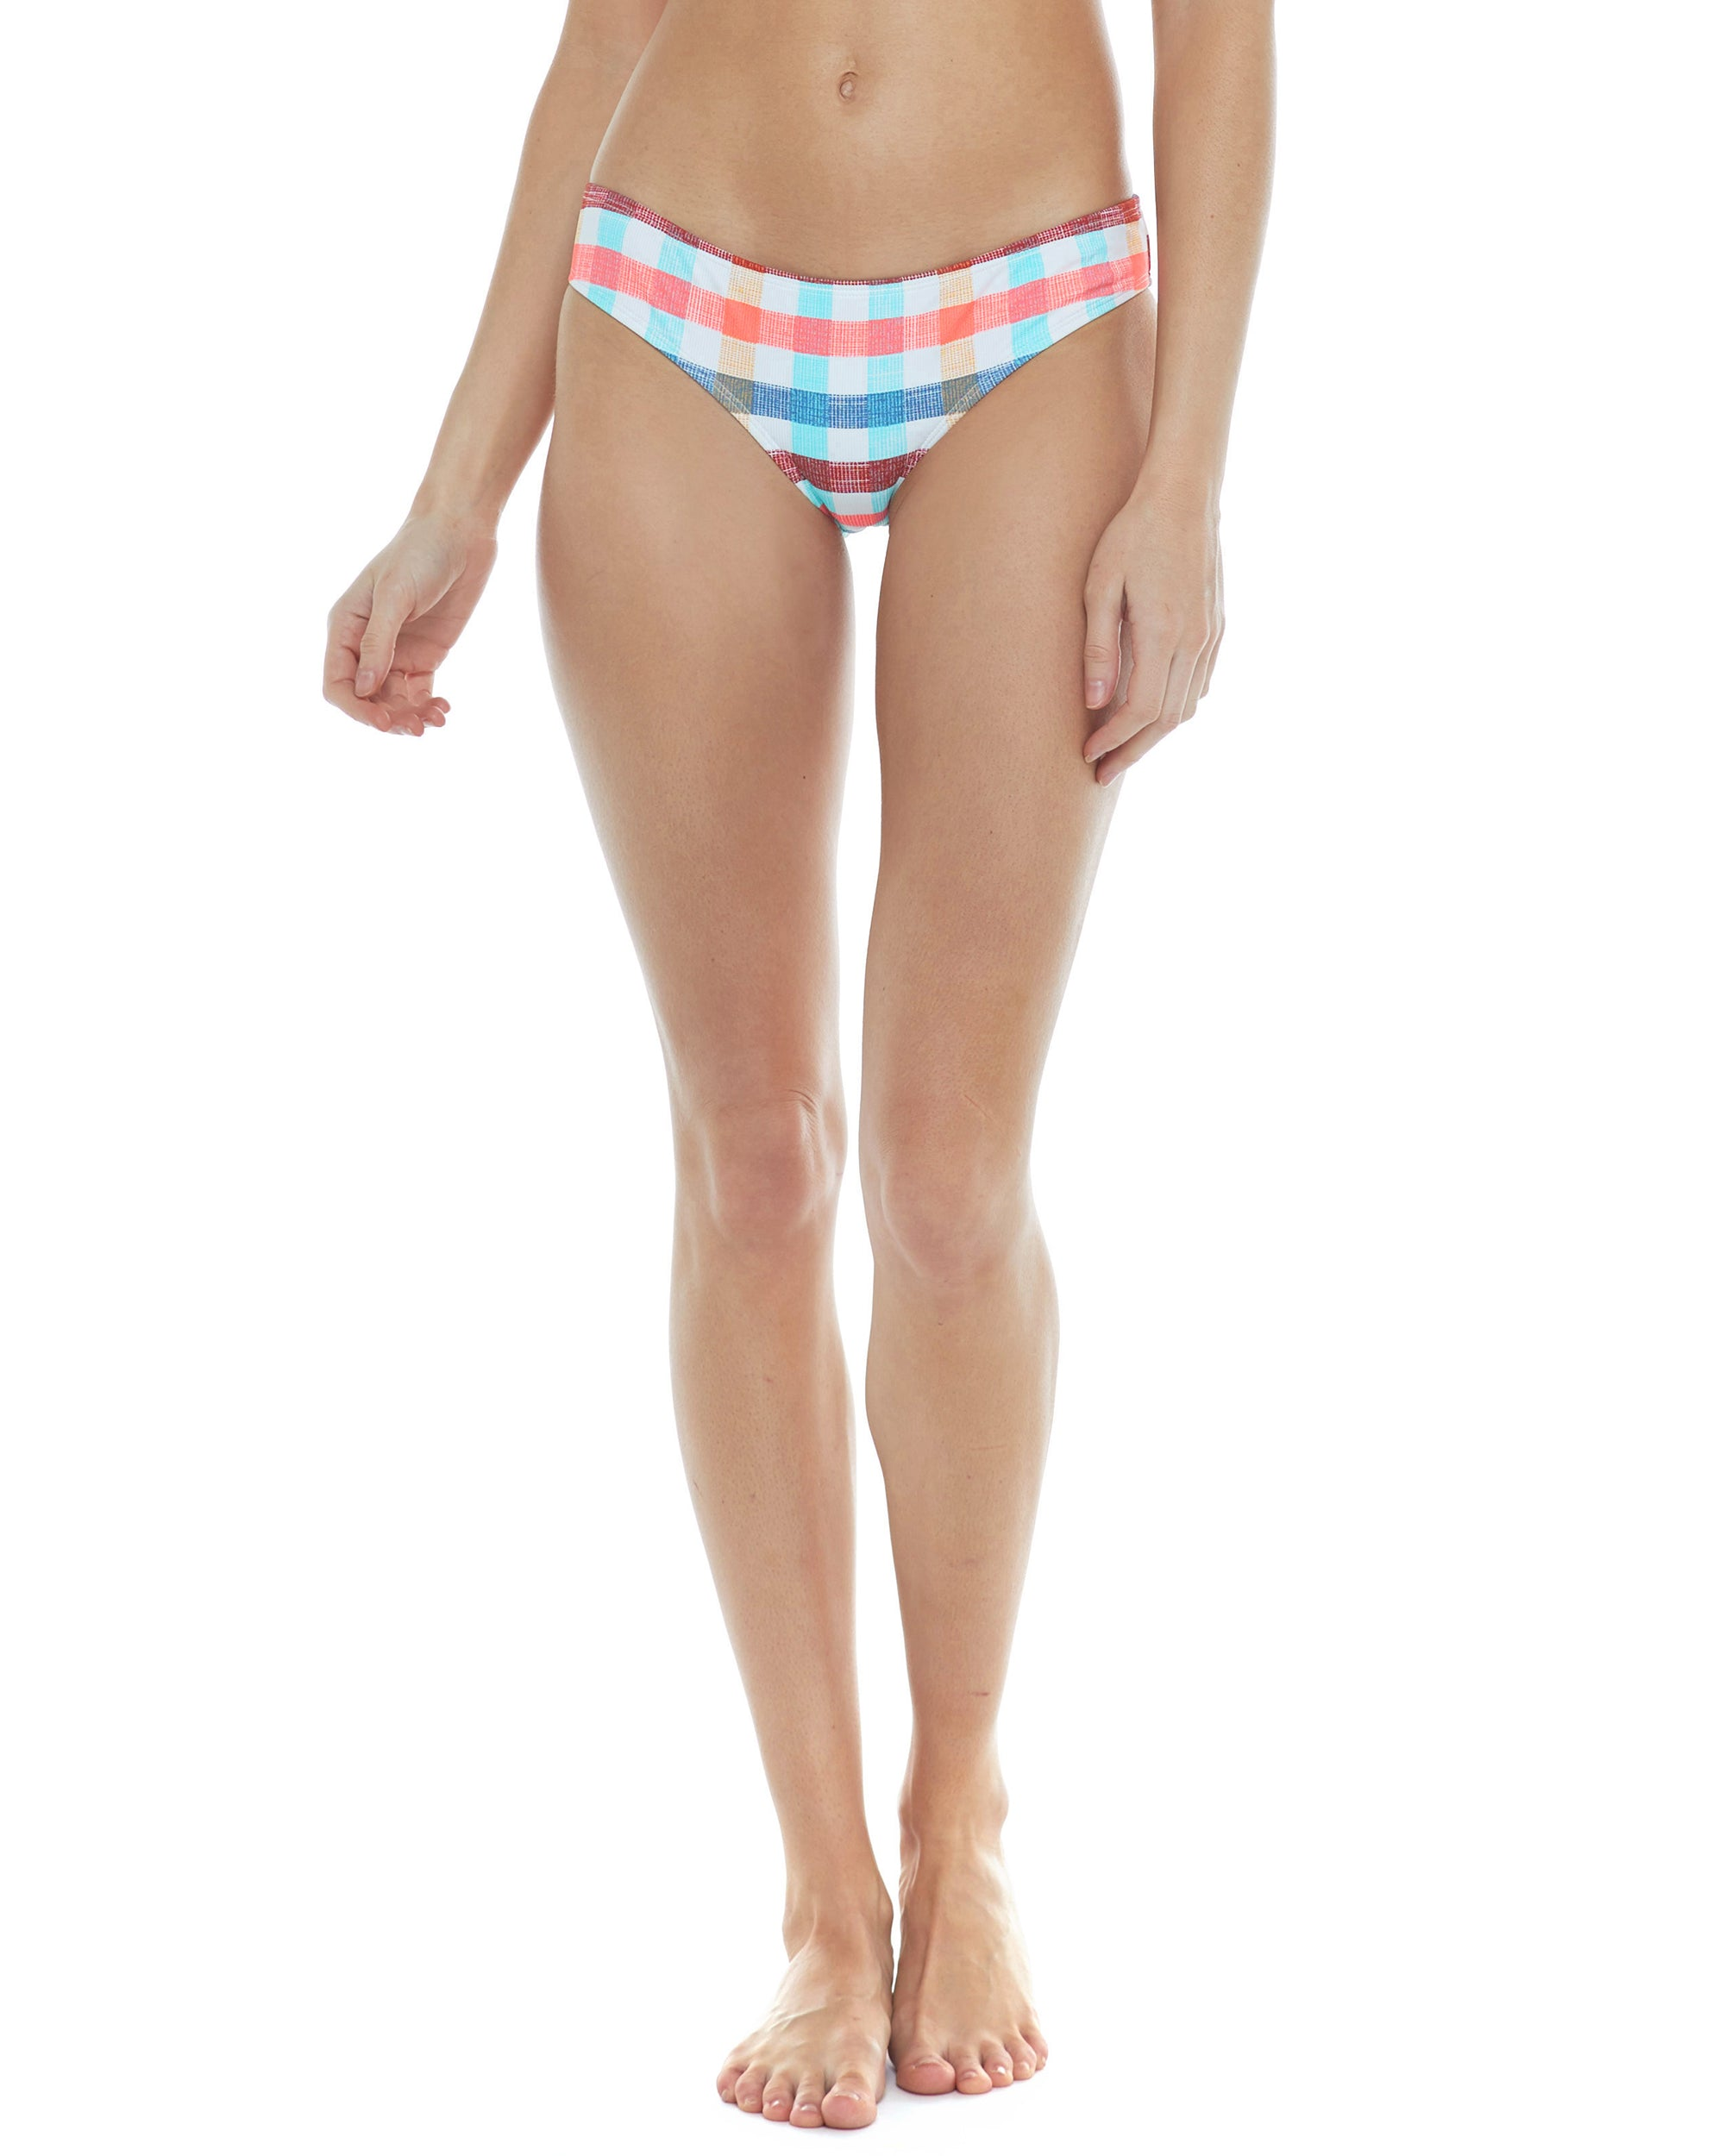 La La Land Eclipse Surf Rider Bikini Bottom - Combo Multi